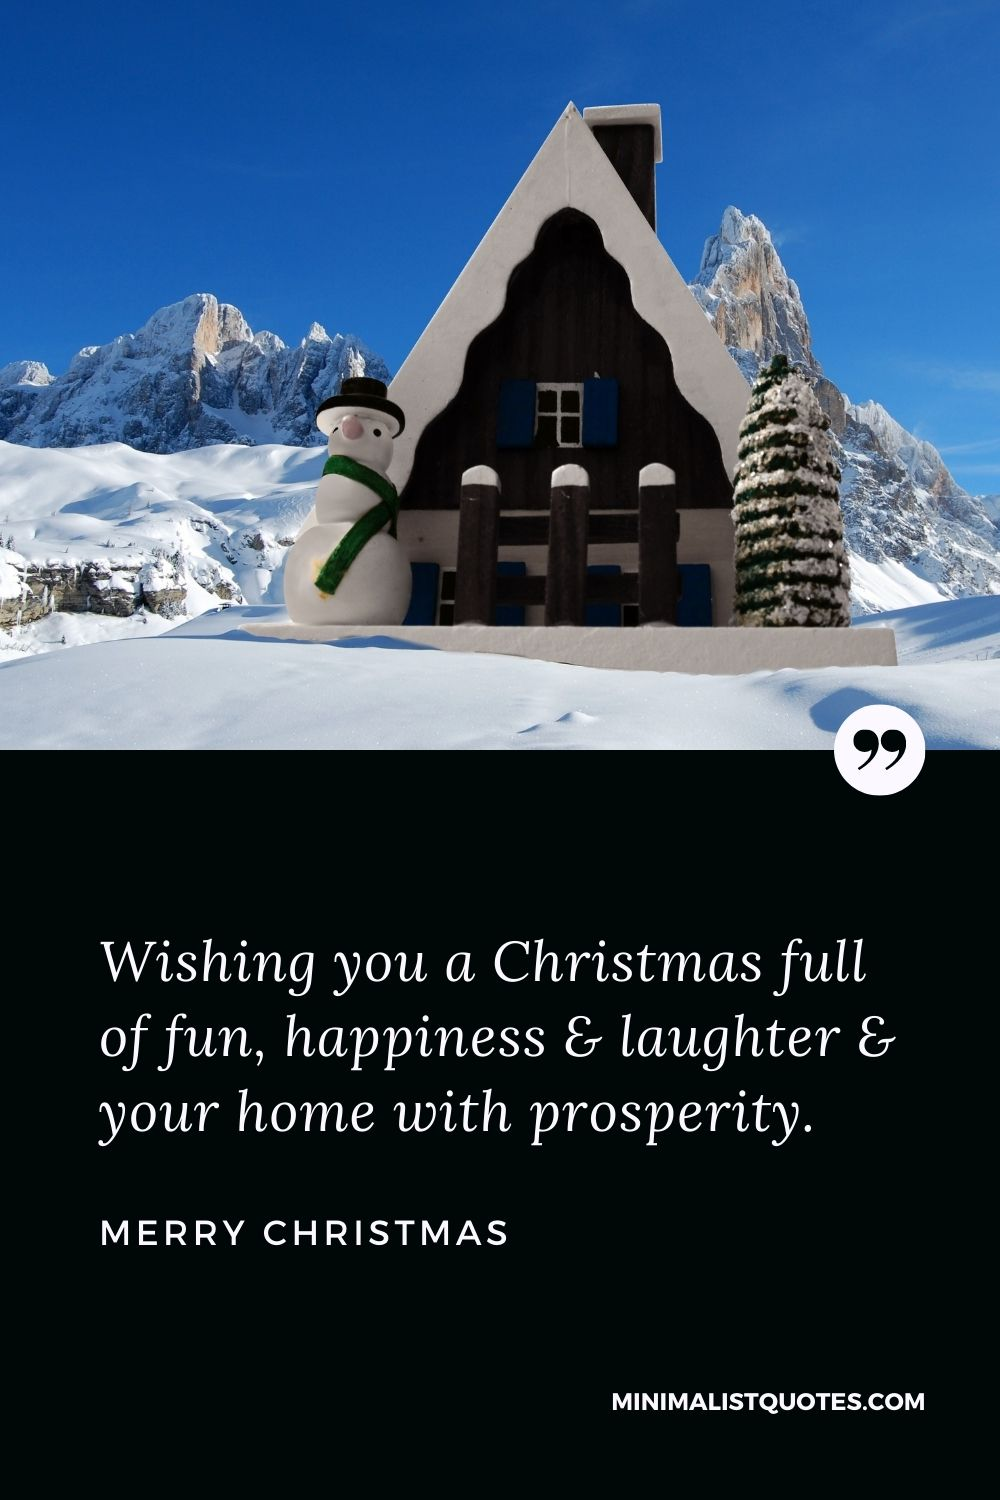 Merry Christmas Wish - Wishing you a Christmas full of fun, happiness & laughter & your home with prosperity.